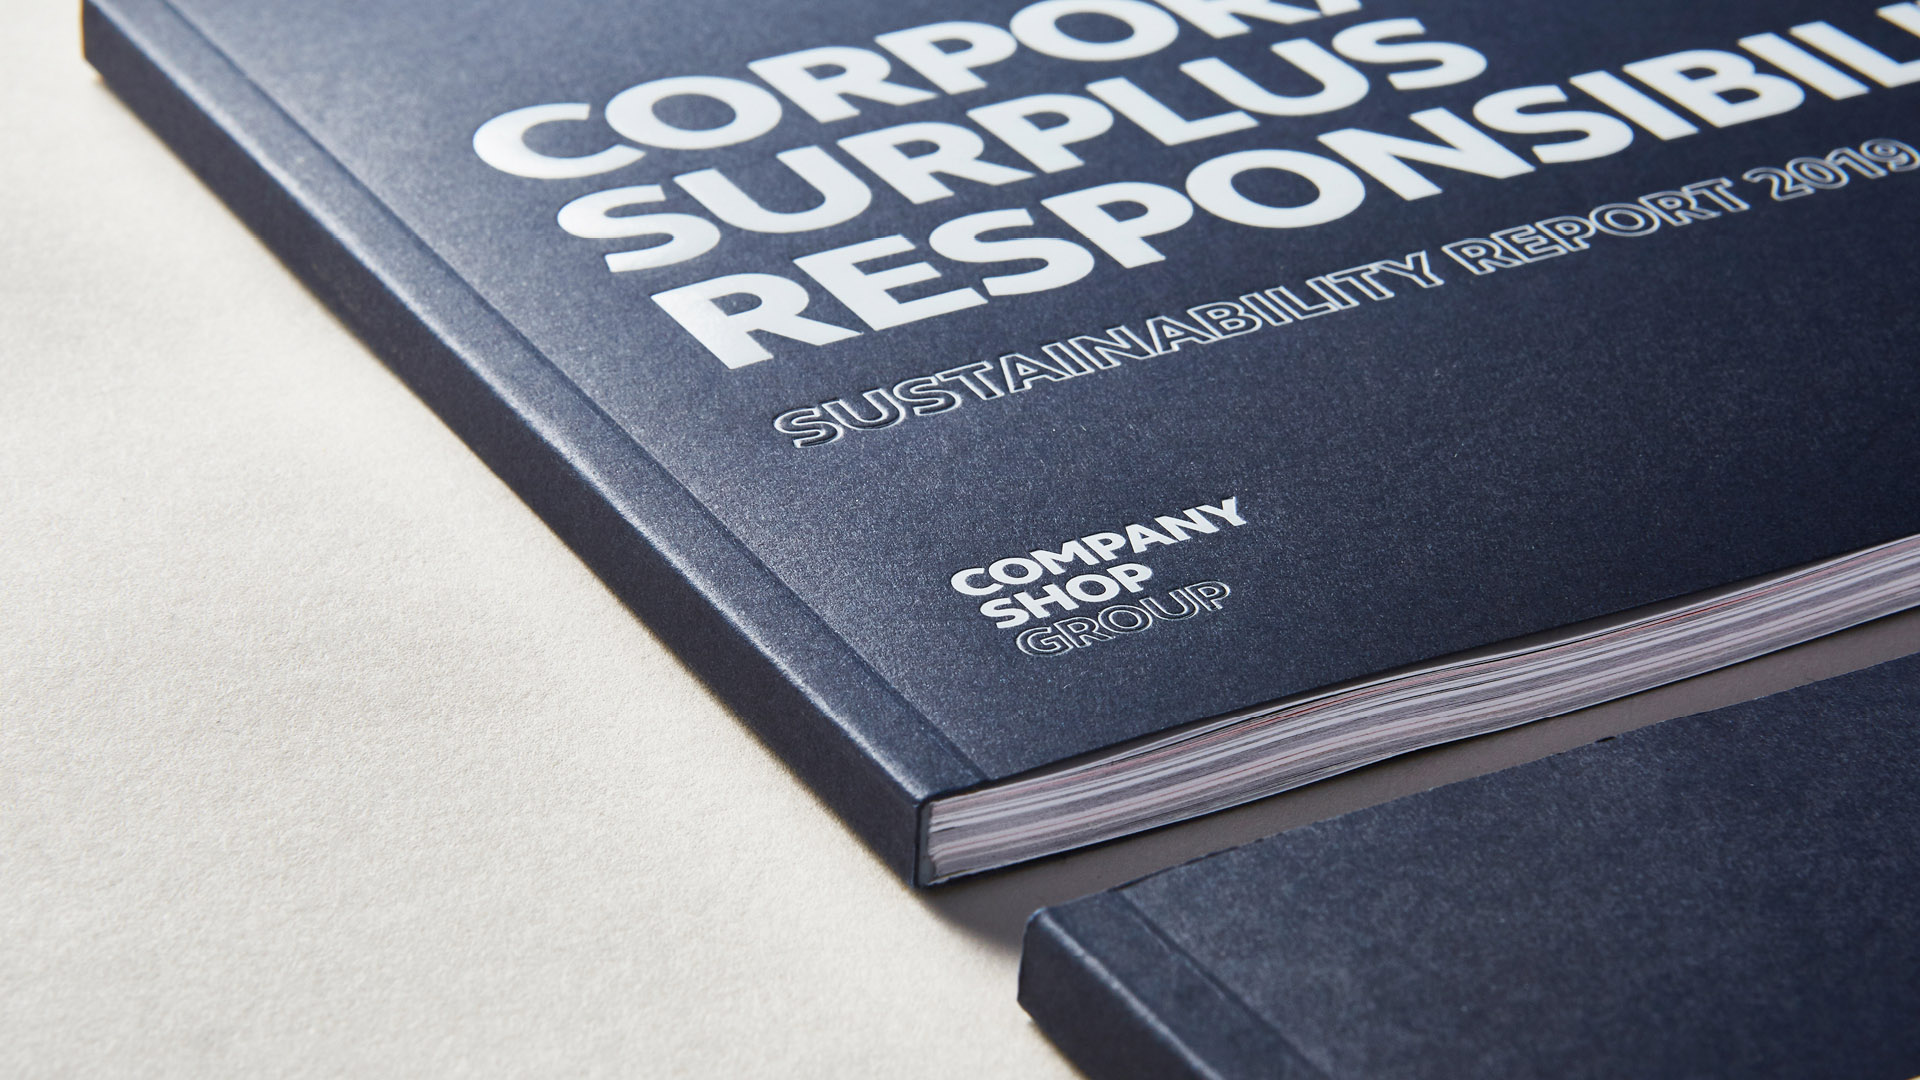 Corporate Surplus Responsibility report 1